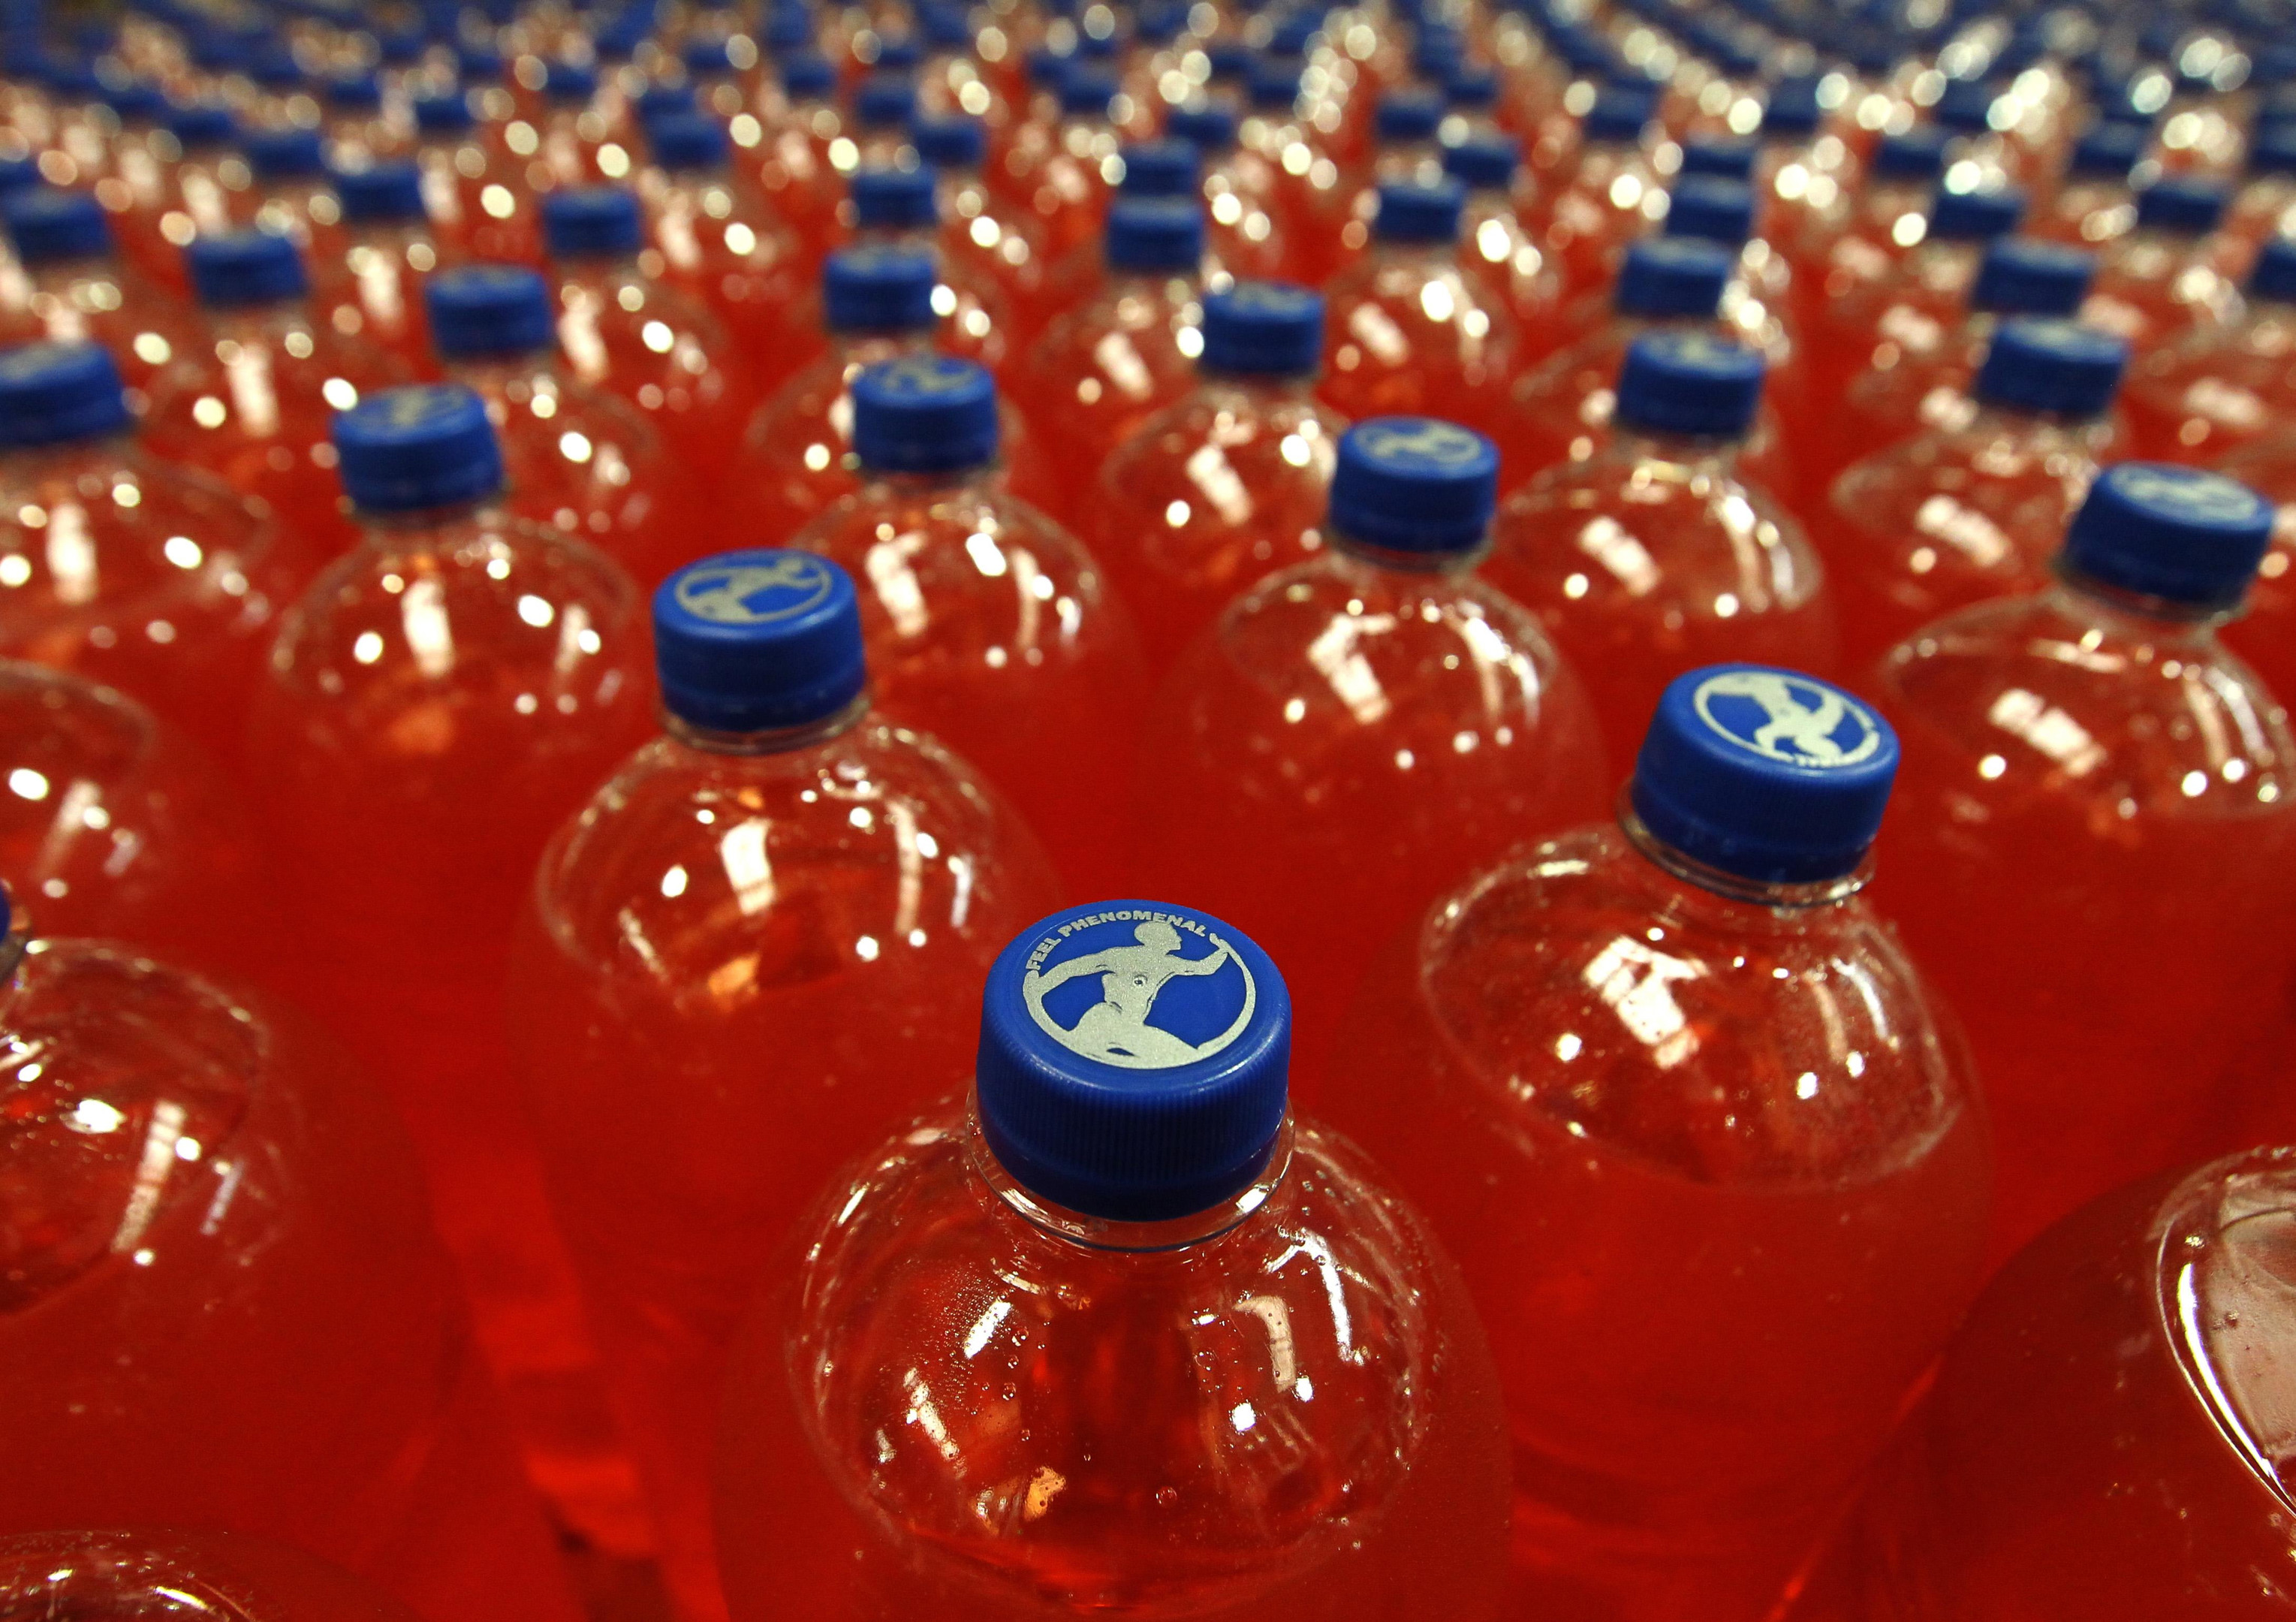 Bottles of Irn Bru in the production hall at AG Barr's Irn Bru factory in Cumbernauld